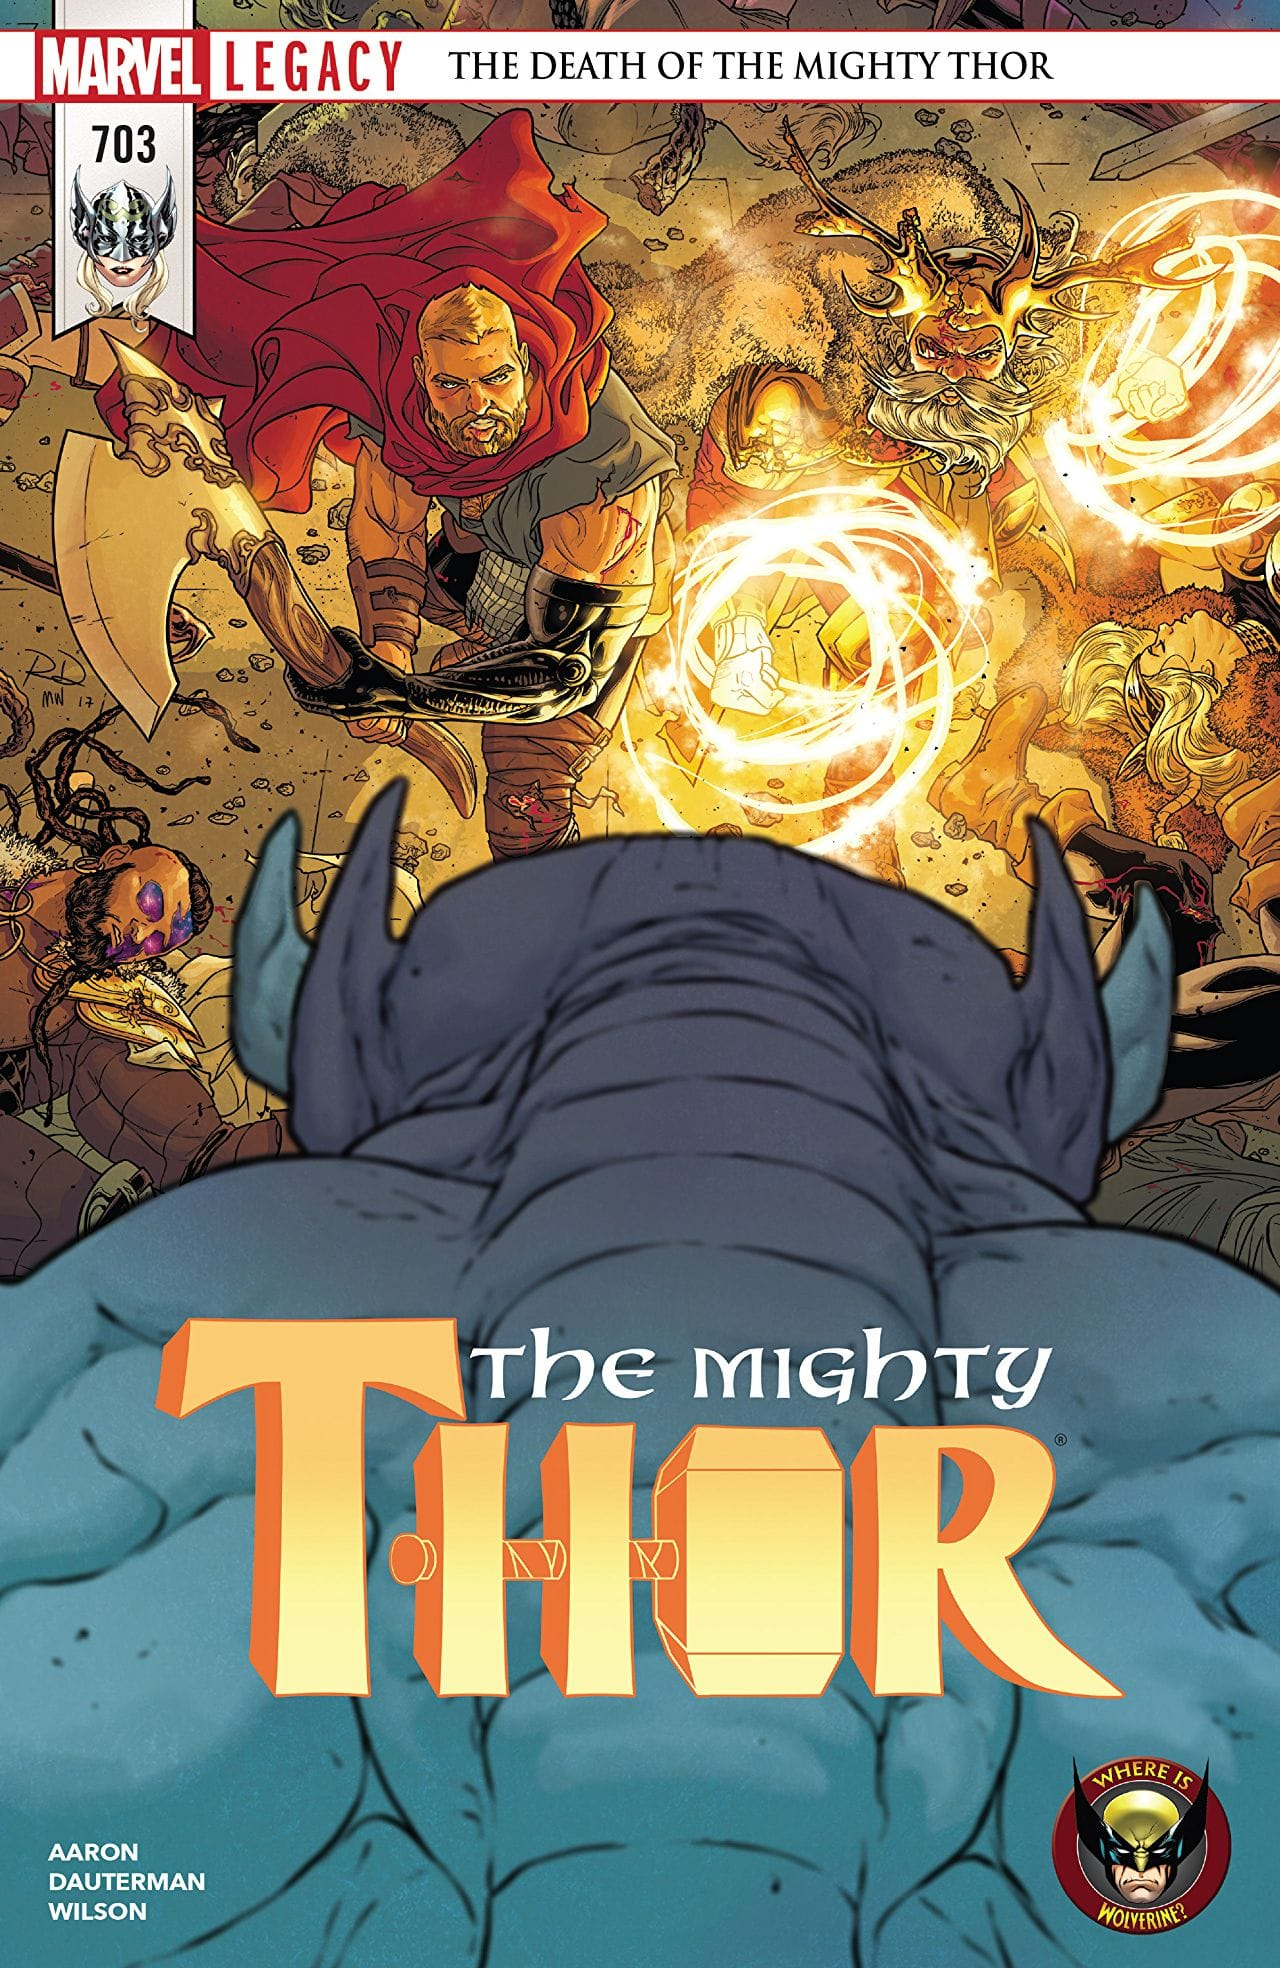 The Mighty Thor #703 review: The End is Nigh